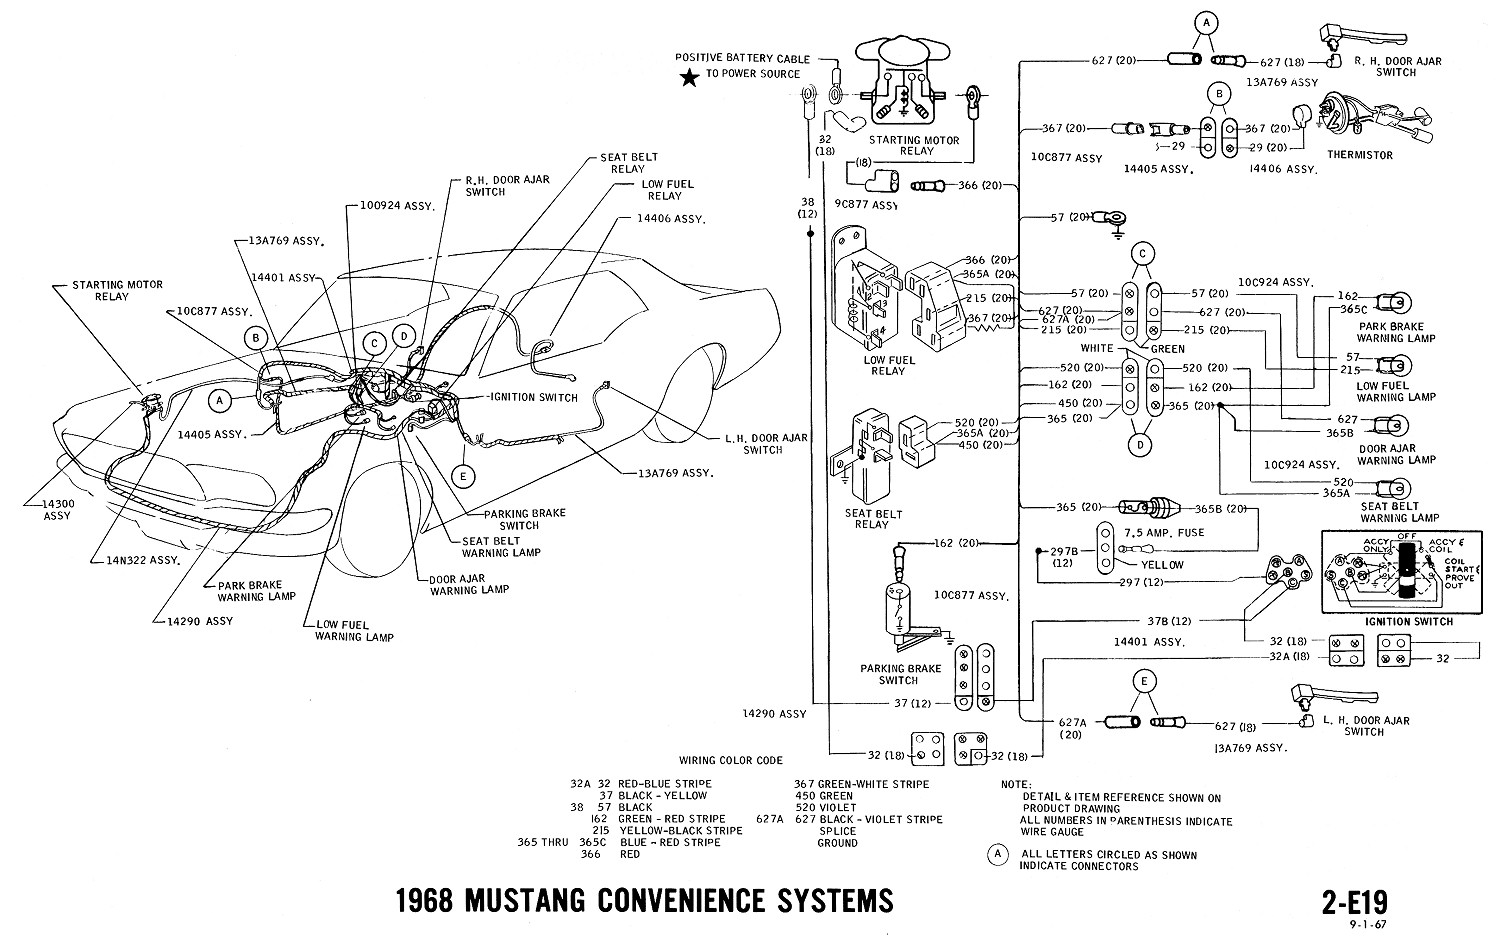 Mustang Wiring Diagram Convenience Systems on 65 Mustang Ignition Switch Wiring Diagram